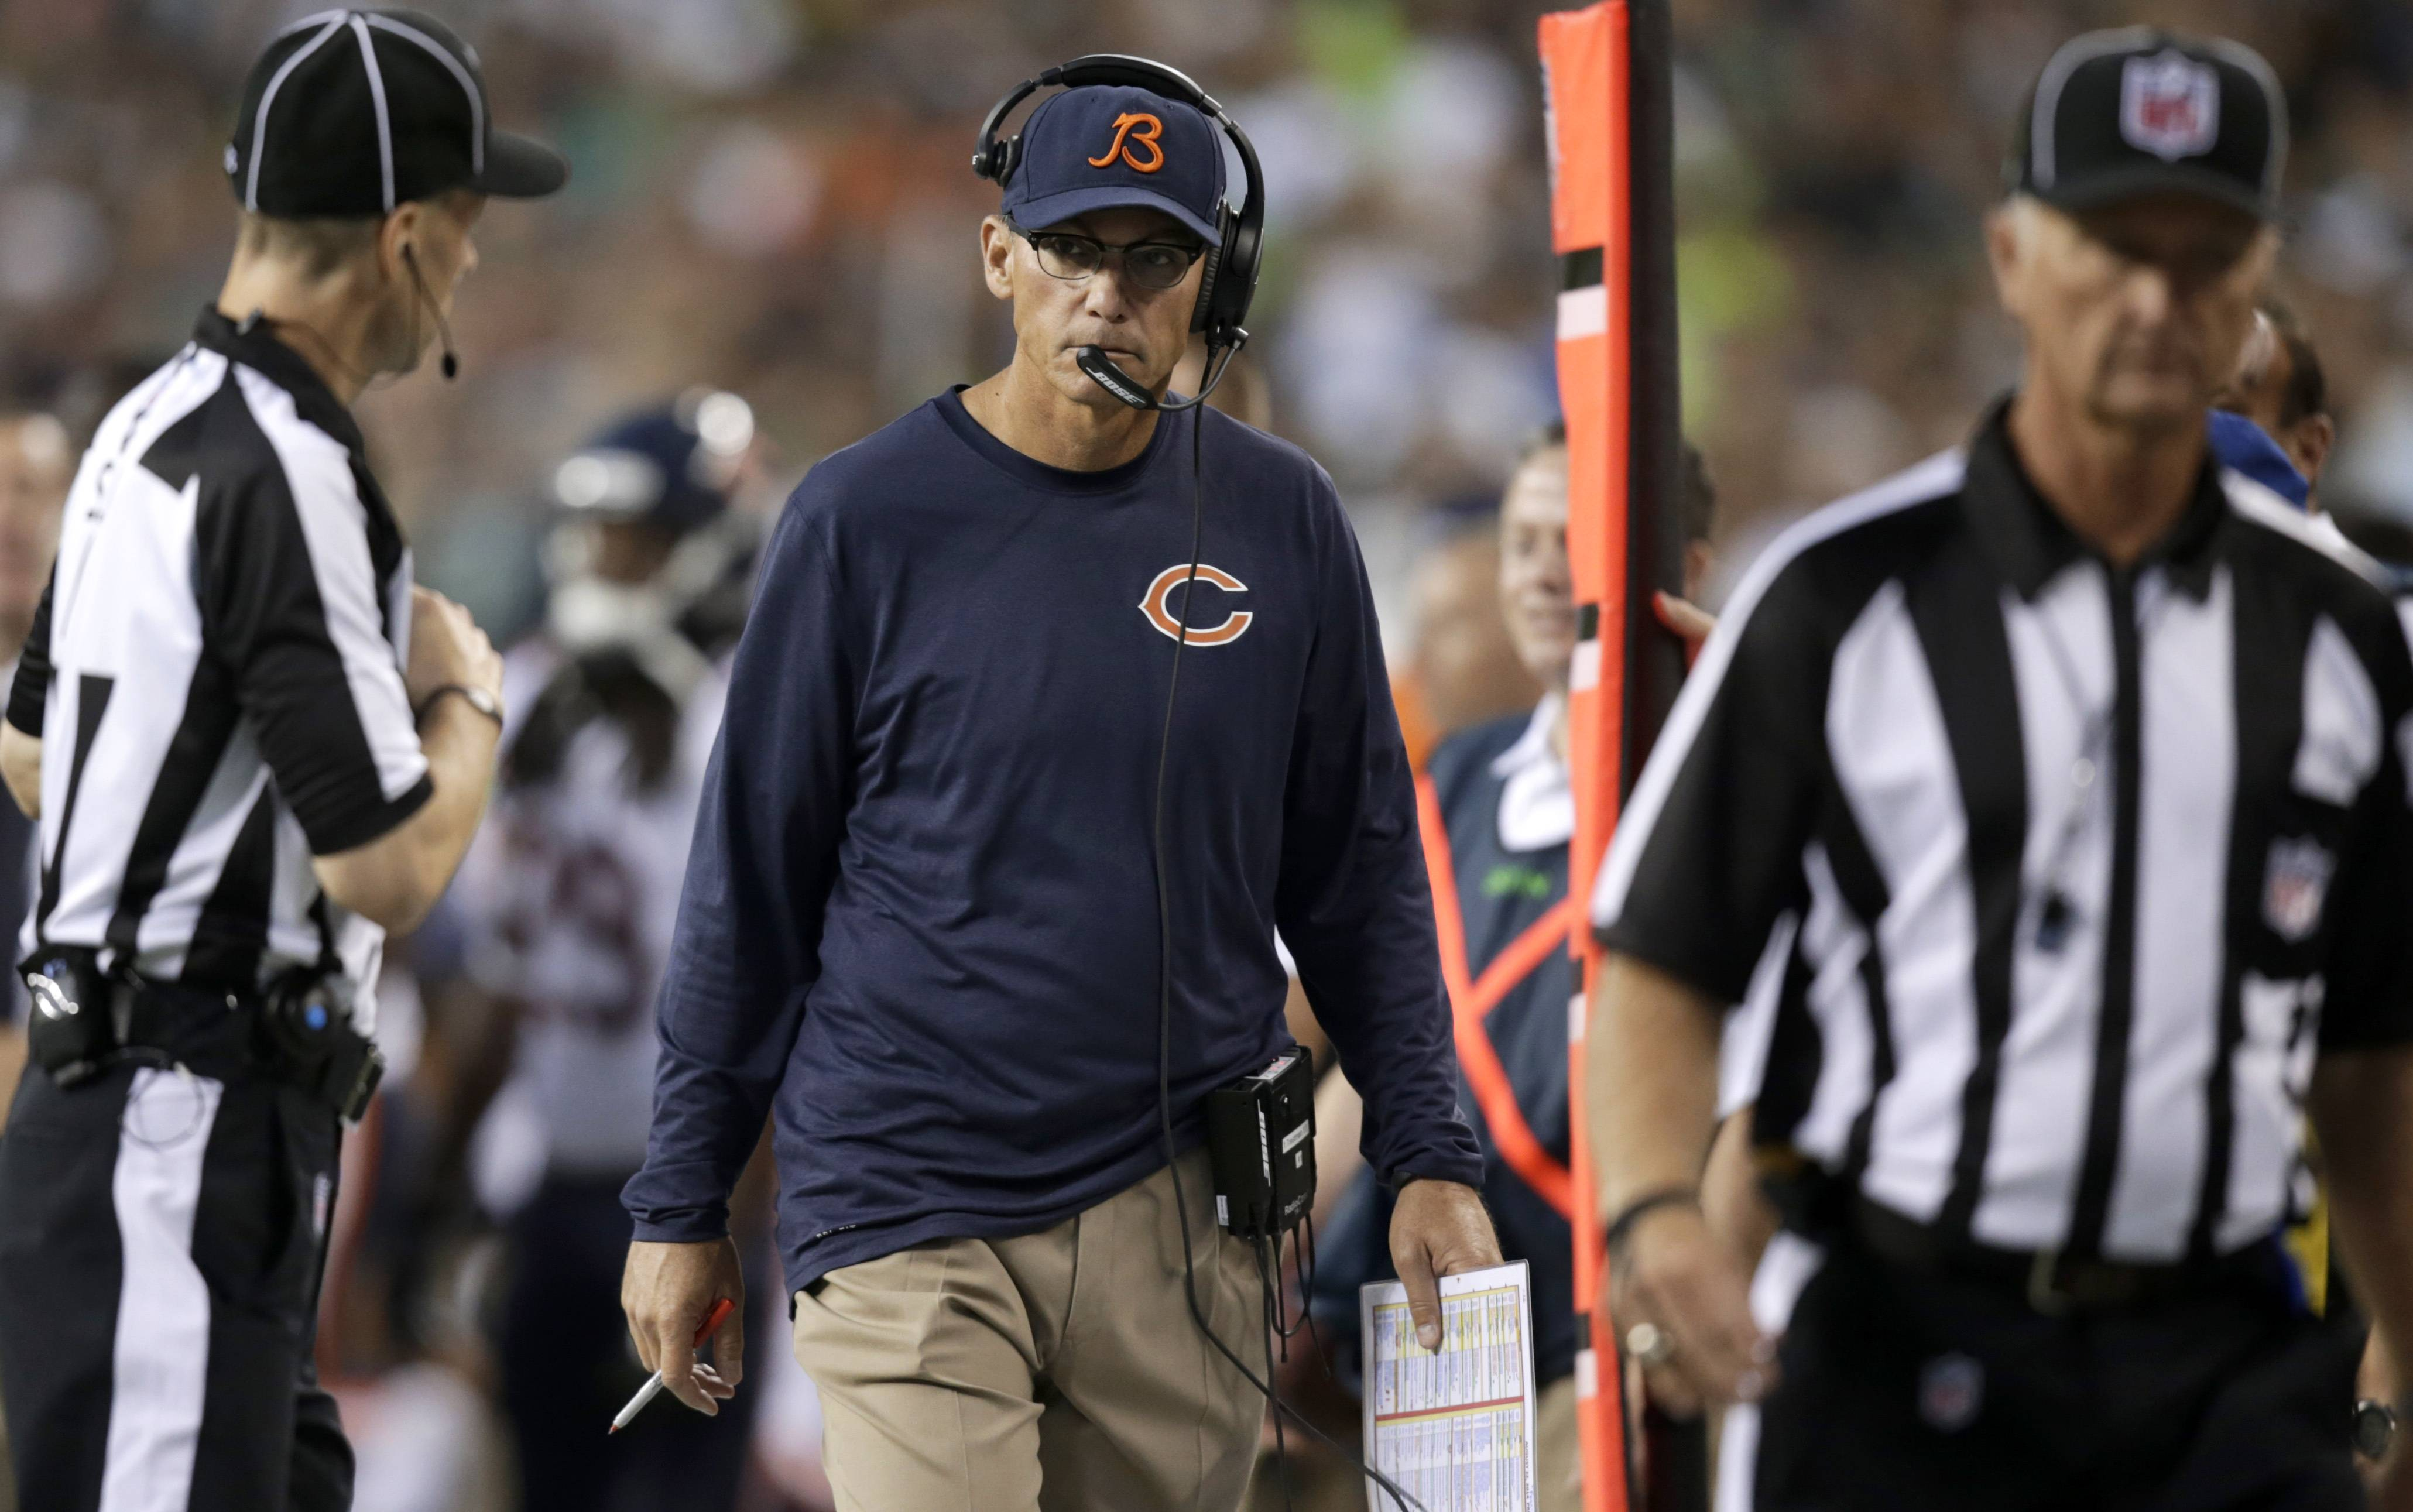 If nothing else, Friday's 34-6 loss at Seattle makes it easier for Bears coach Marc Trestman to convince his team that there is still much work to be done.